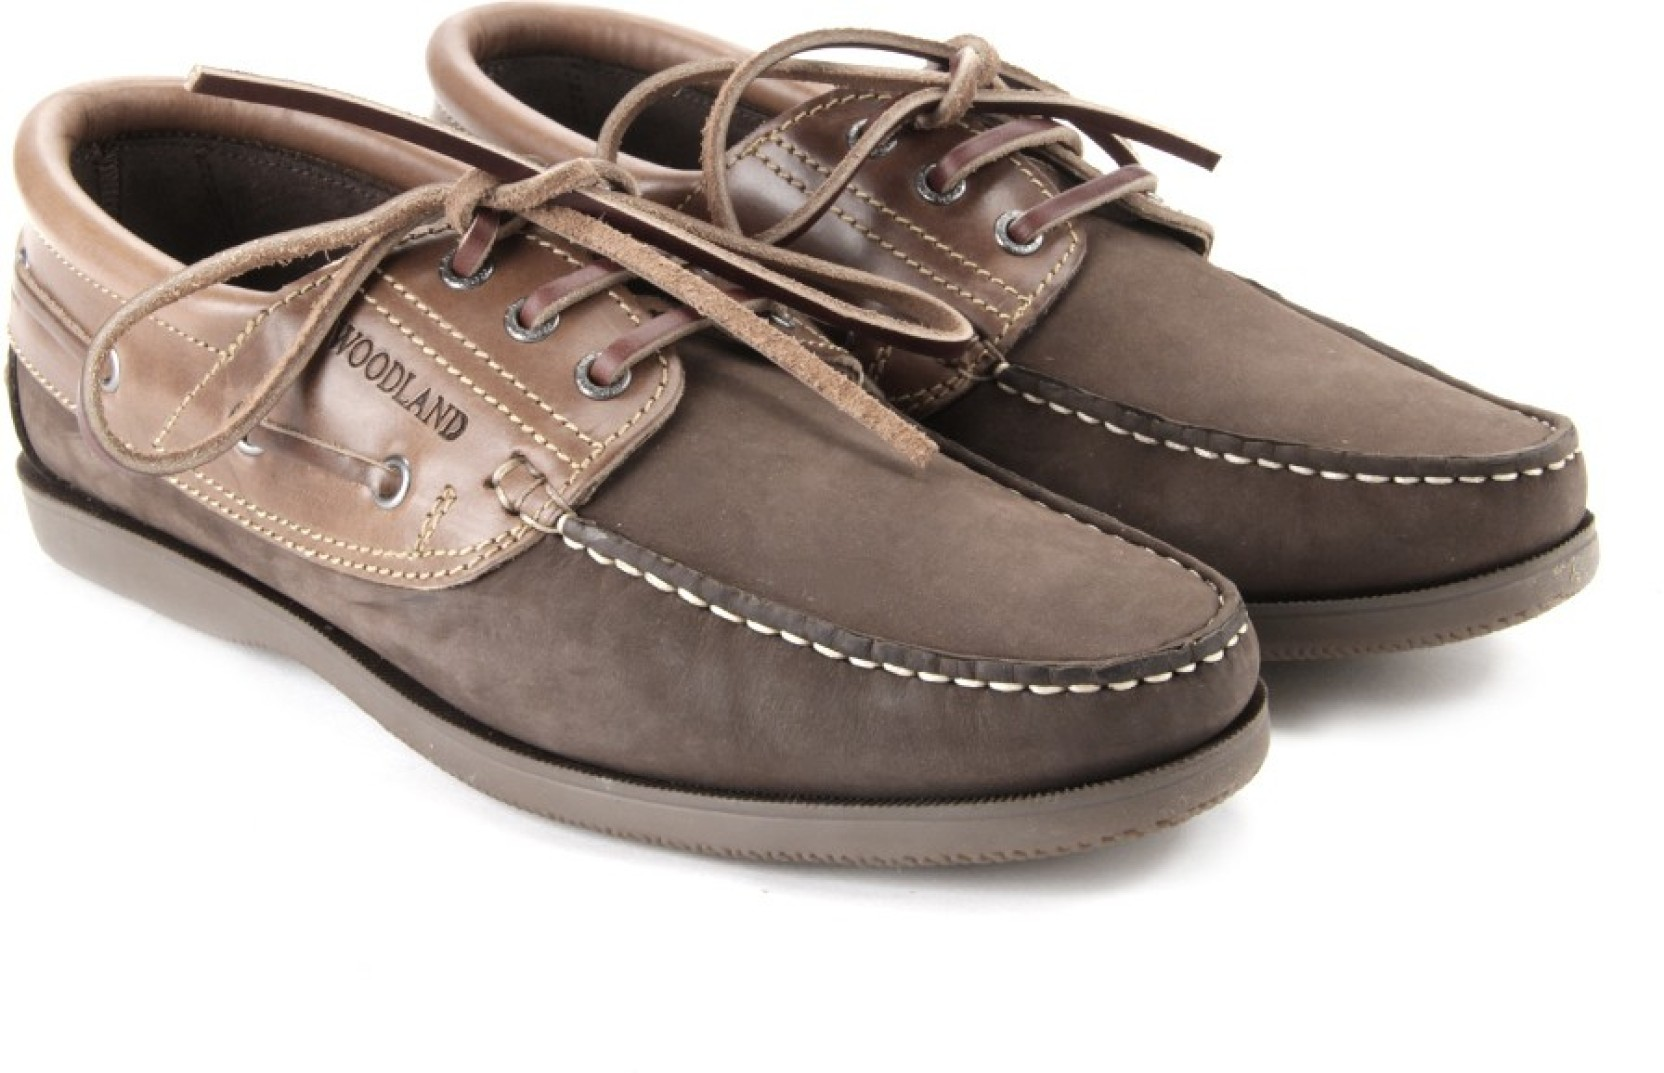 Buy Woodland Shoes Online Cash On Delivery